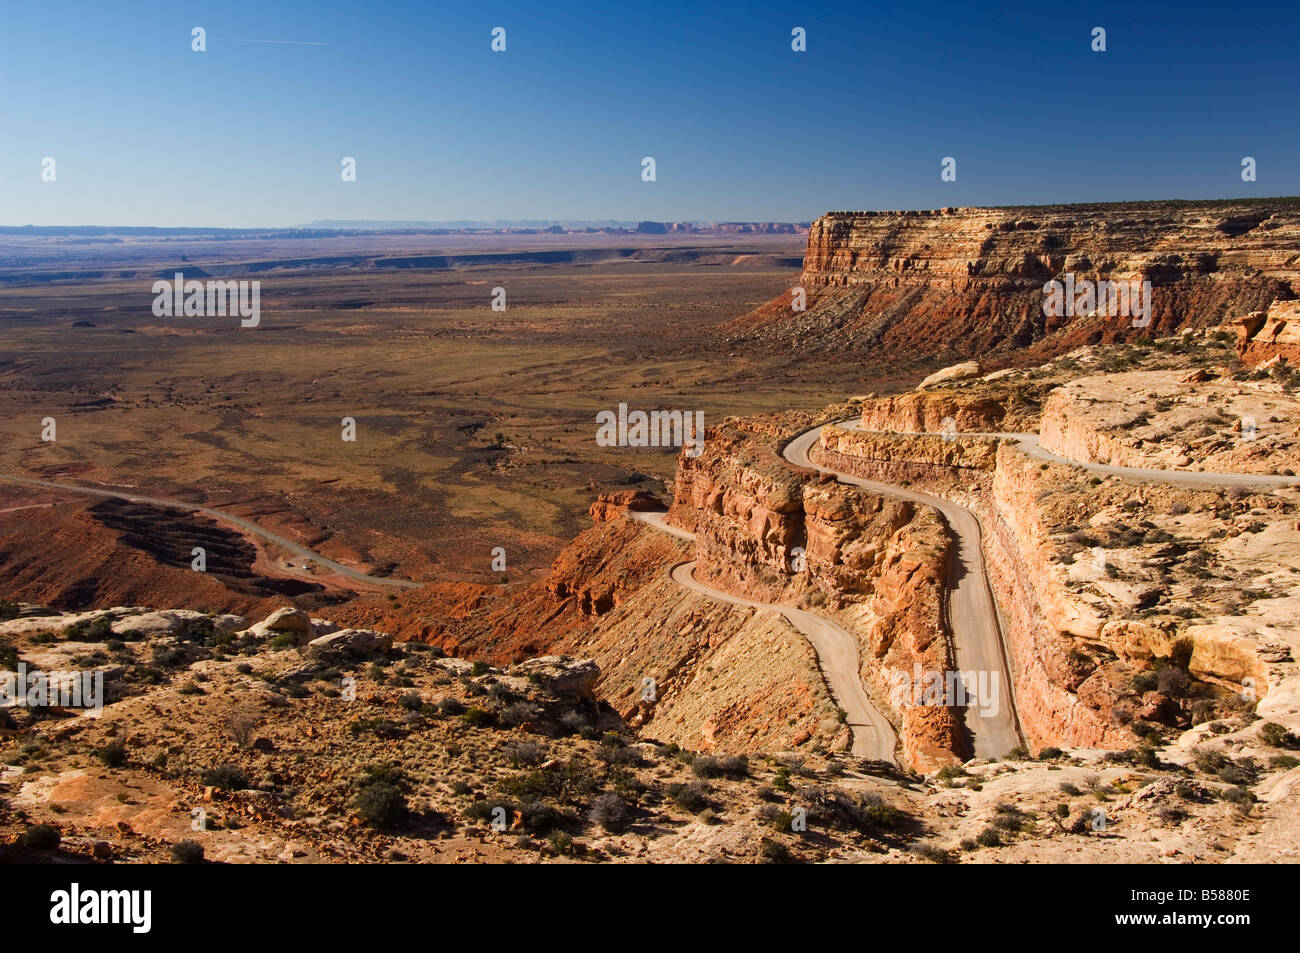 Hairpin bends leading down to the Valley of the Gods near Monument Valley, Arizona, United States of America, North - Stock Image